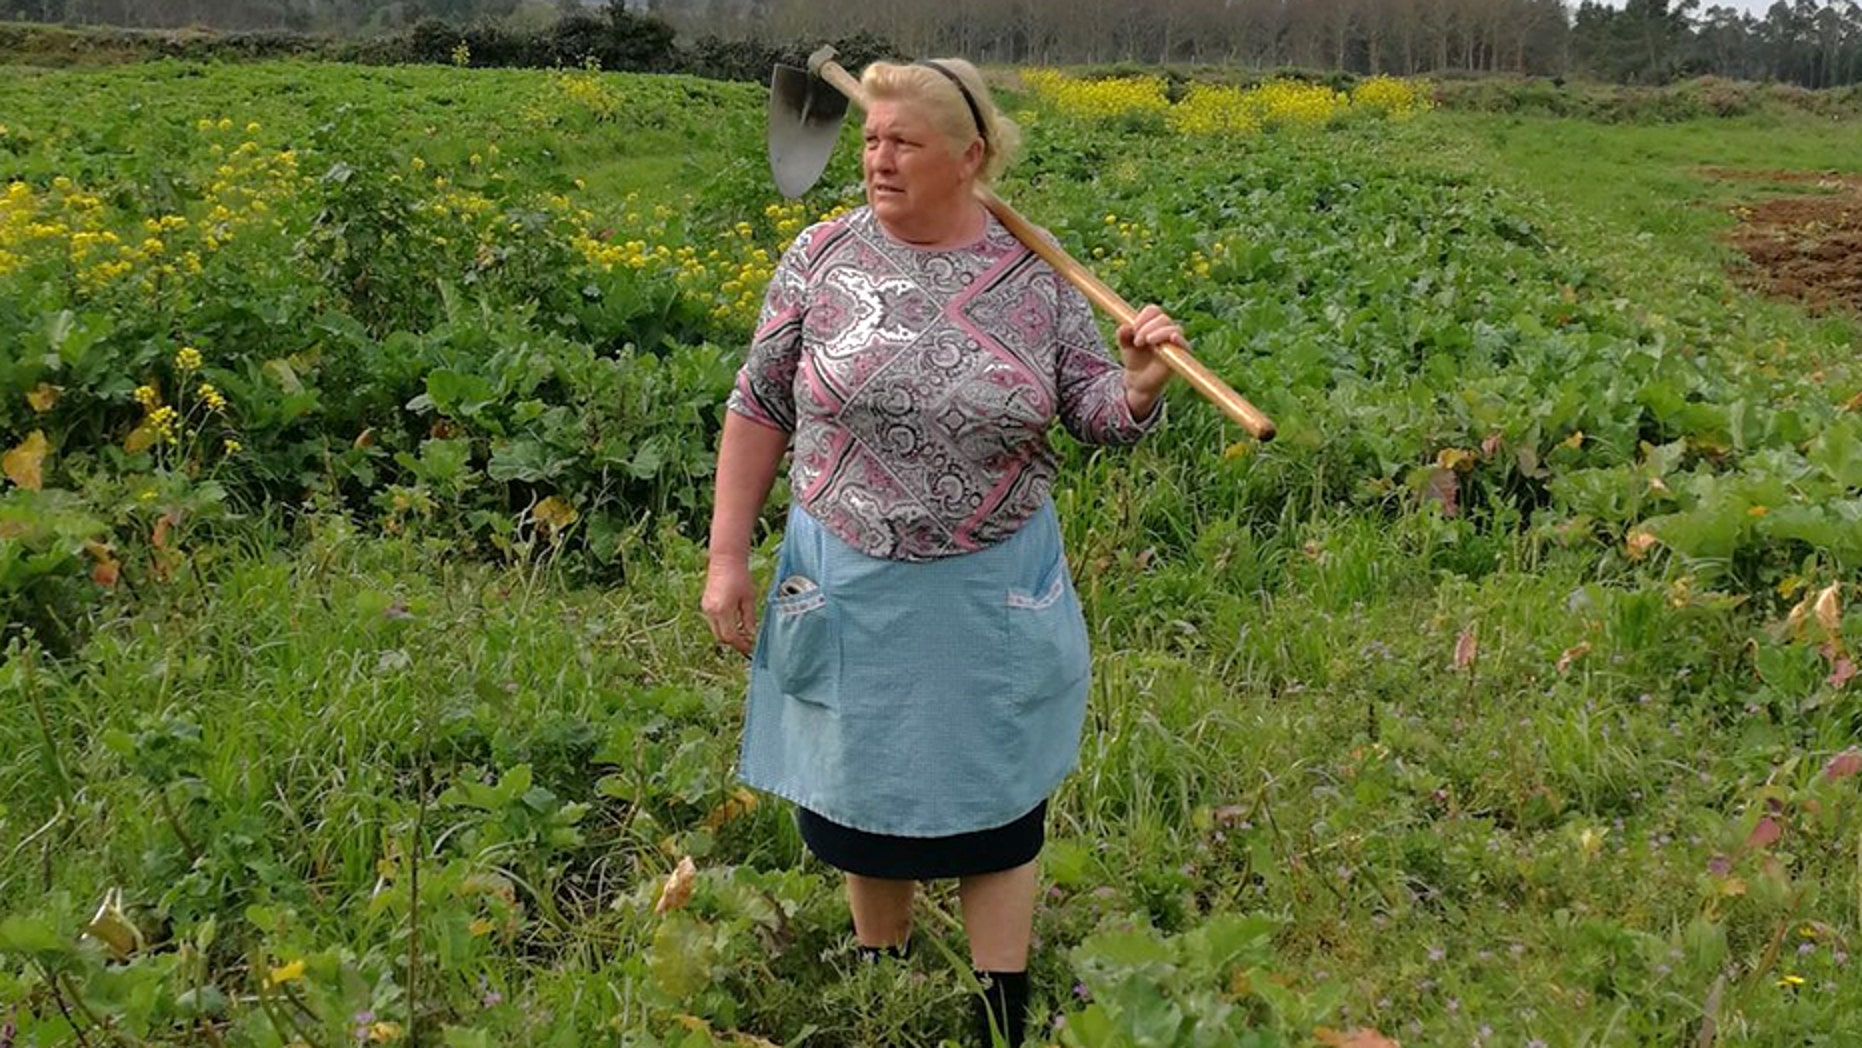 Spanish farmer Dolores Leis Antelo has been drawing comparisons to President Donald Trump ever since a photo of her started going viral last week.